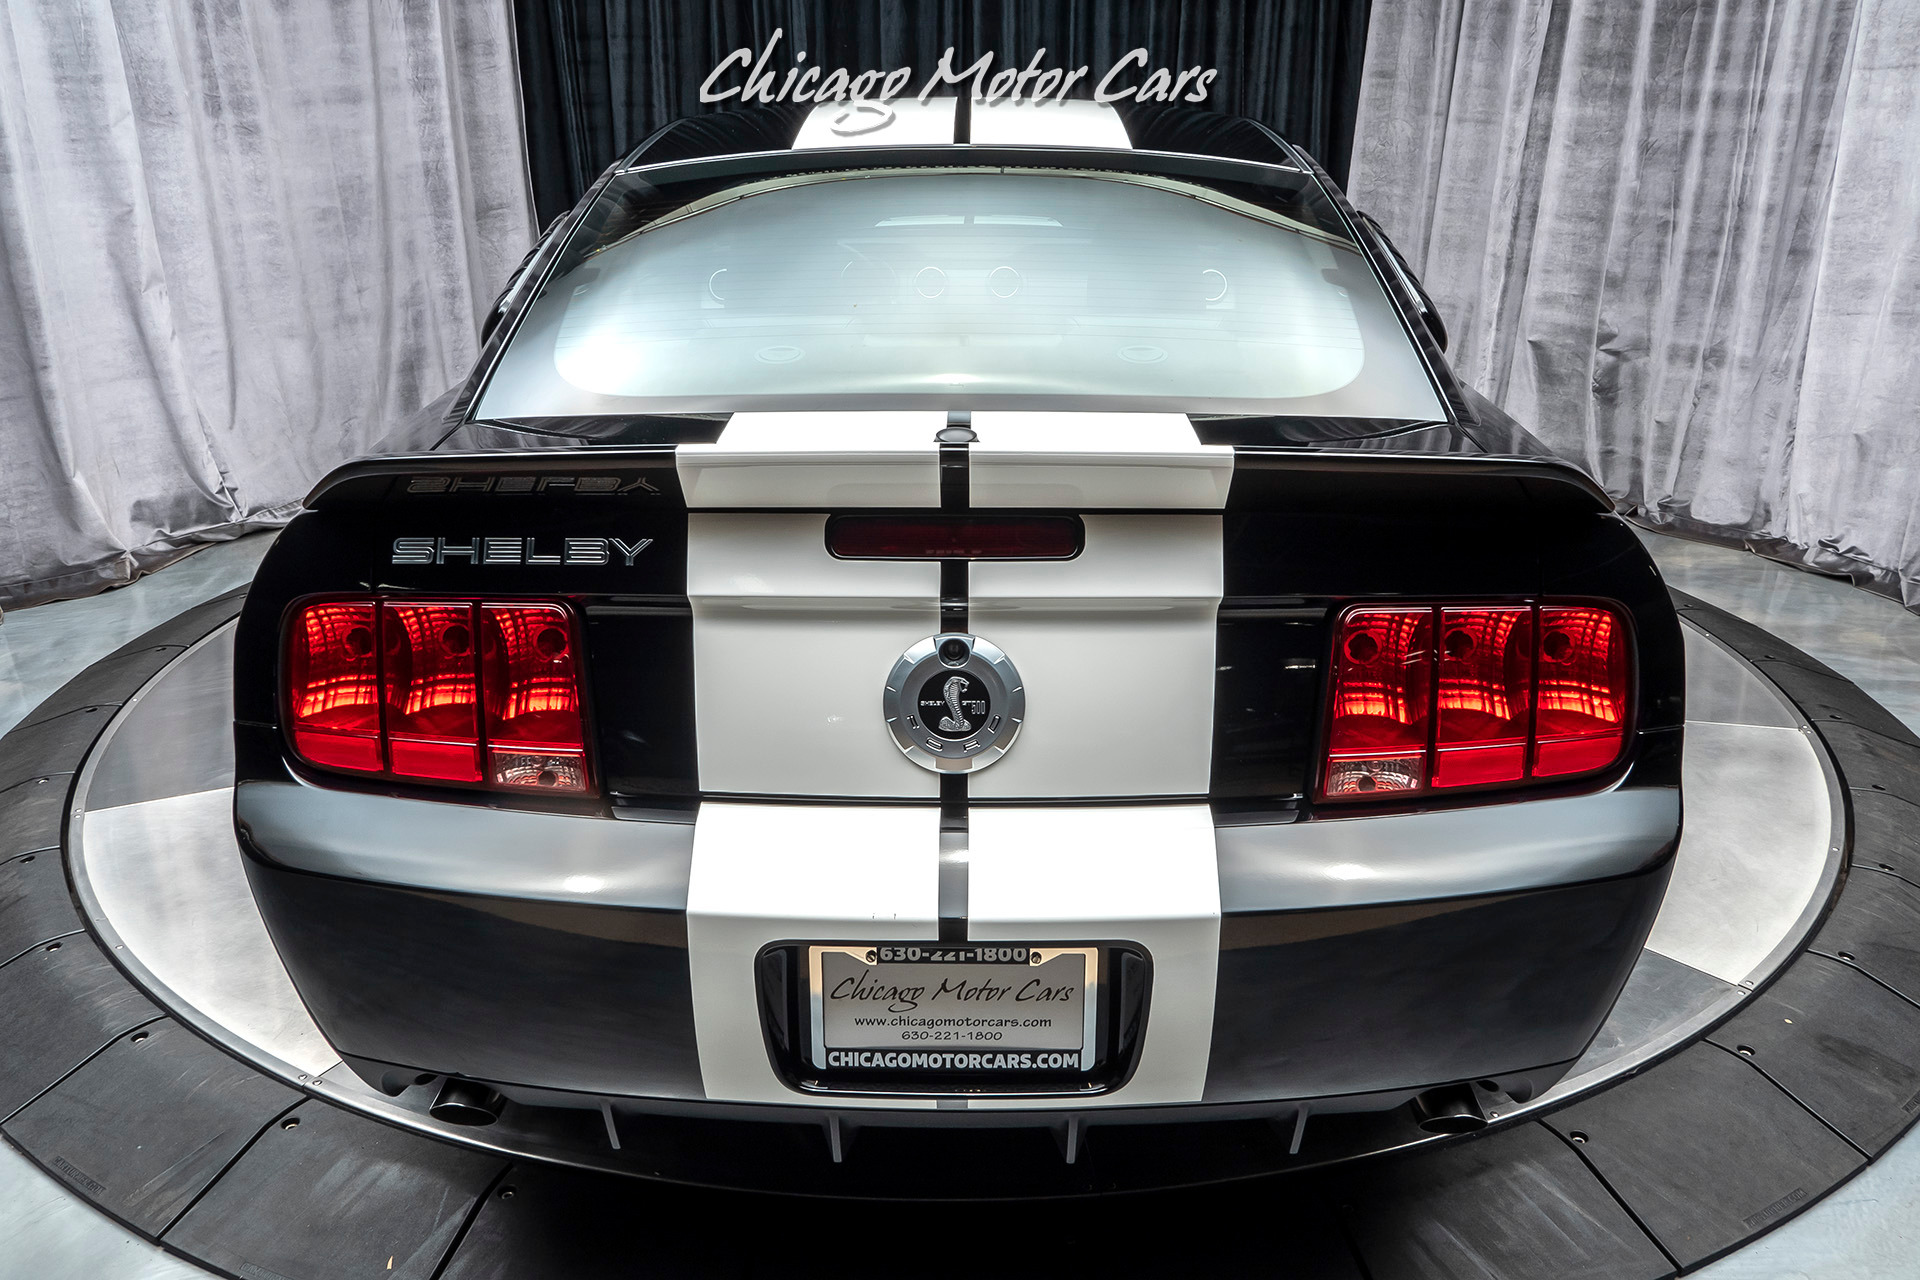 Used-2007-Ford-Mustang-Shelby-GT500-Coupe-COLLECTORS-QUALITY-ONLY-431-MILES